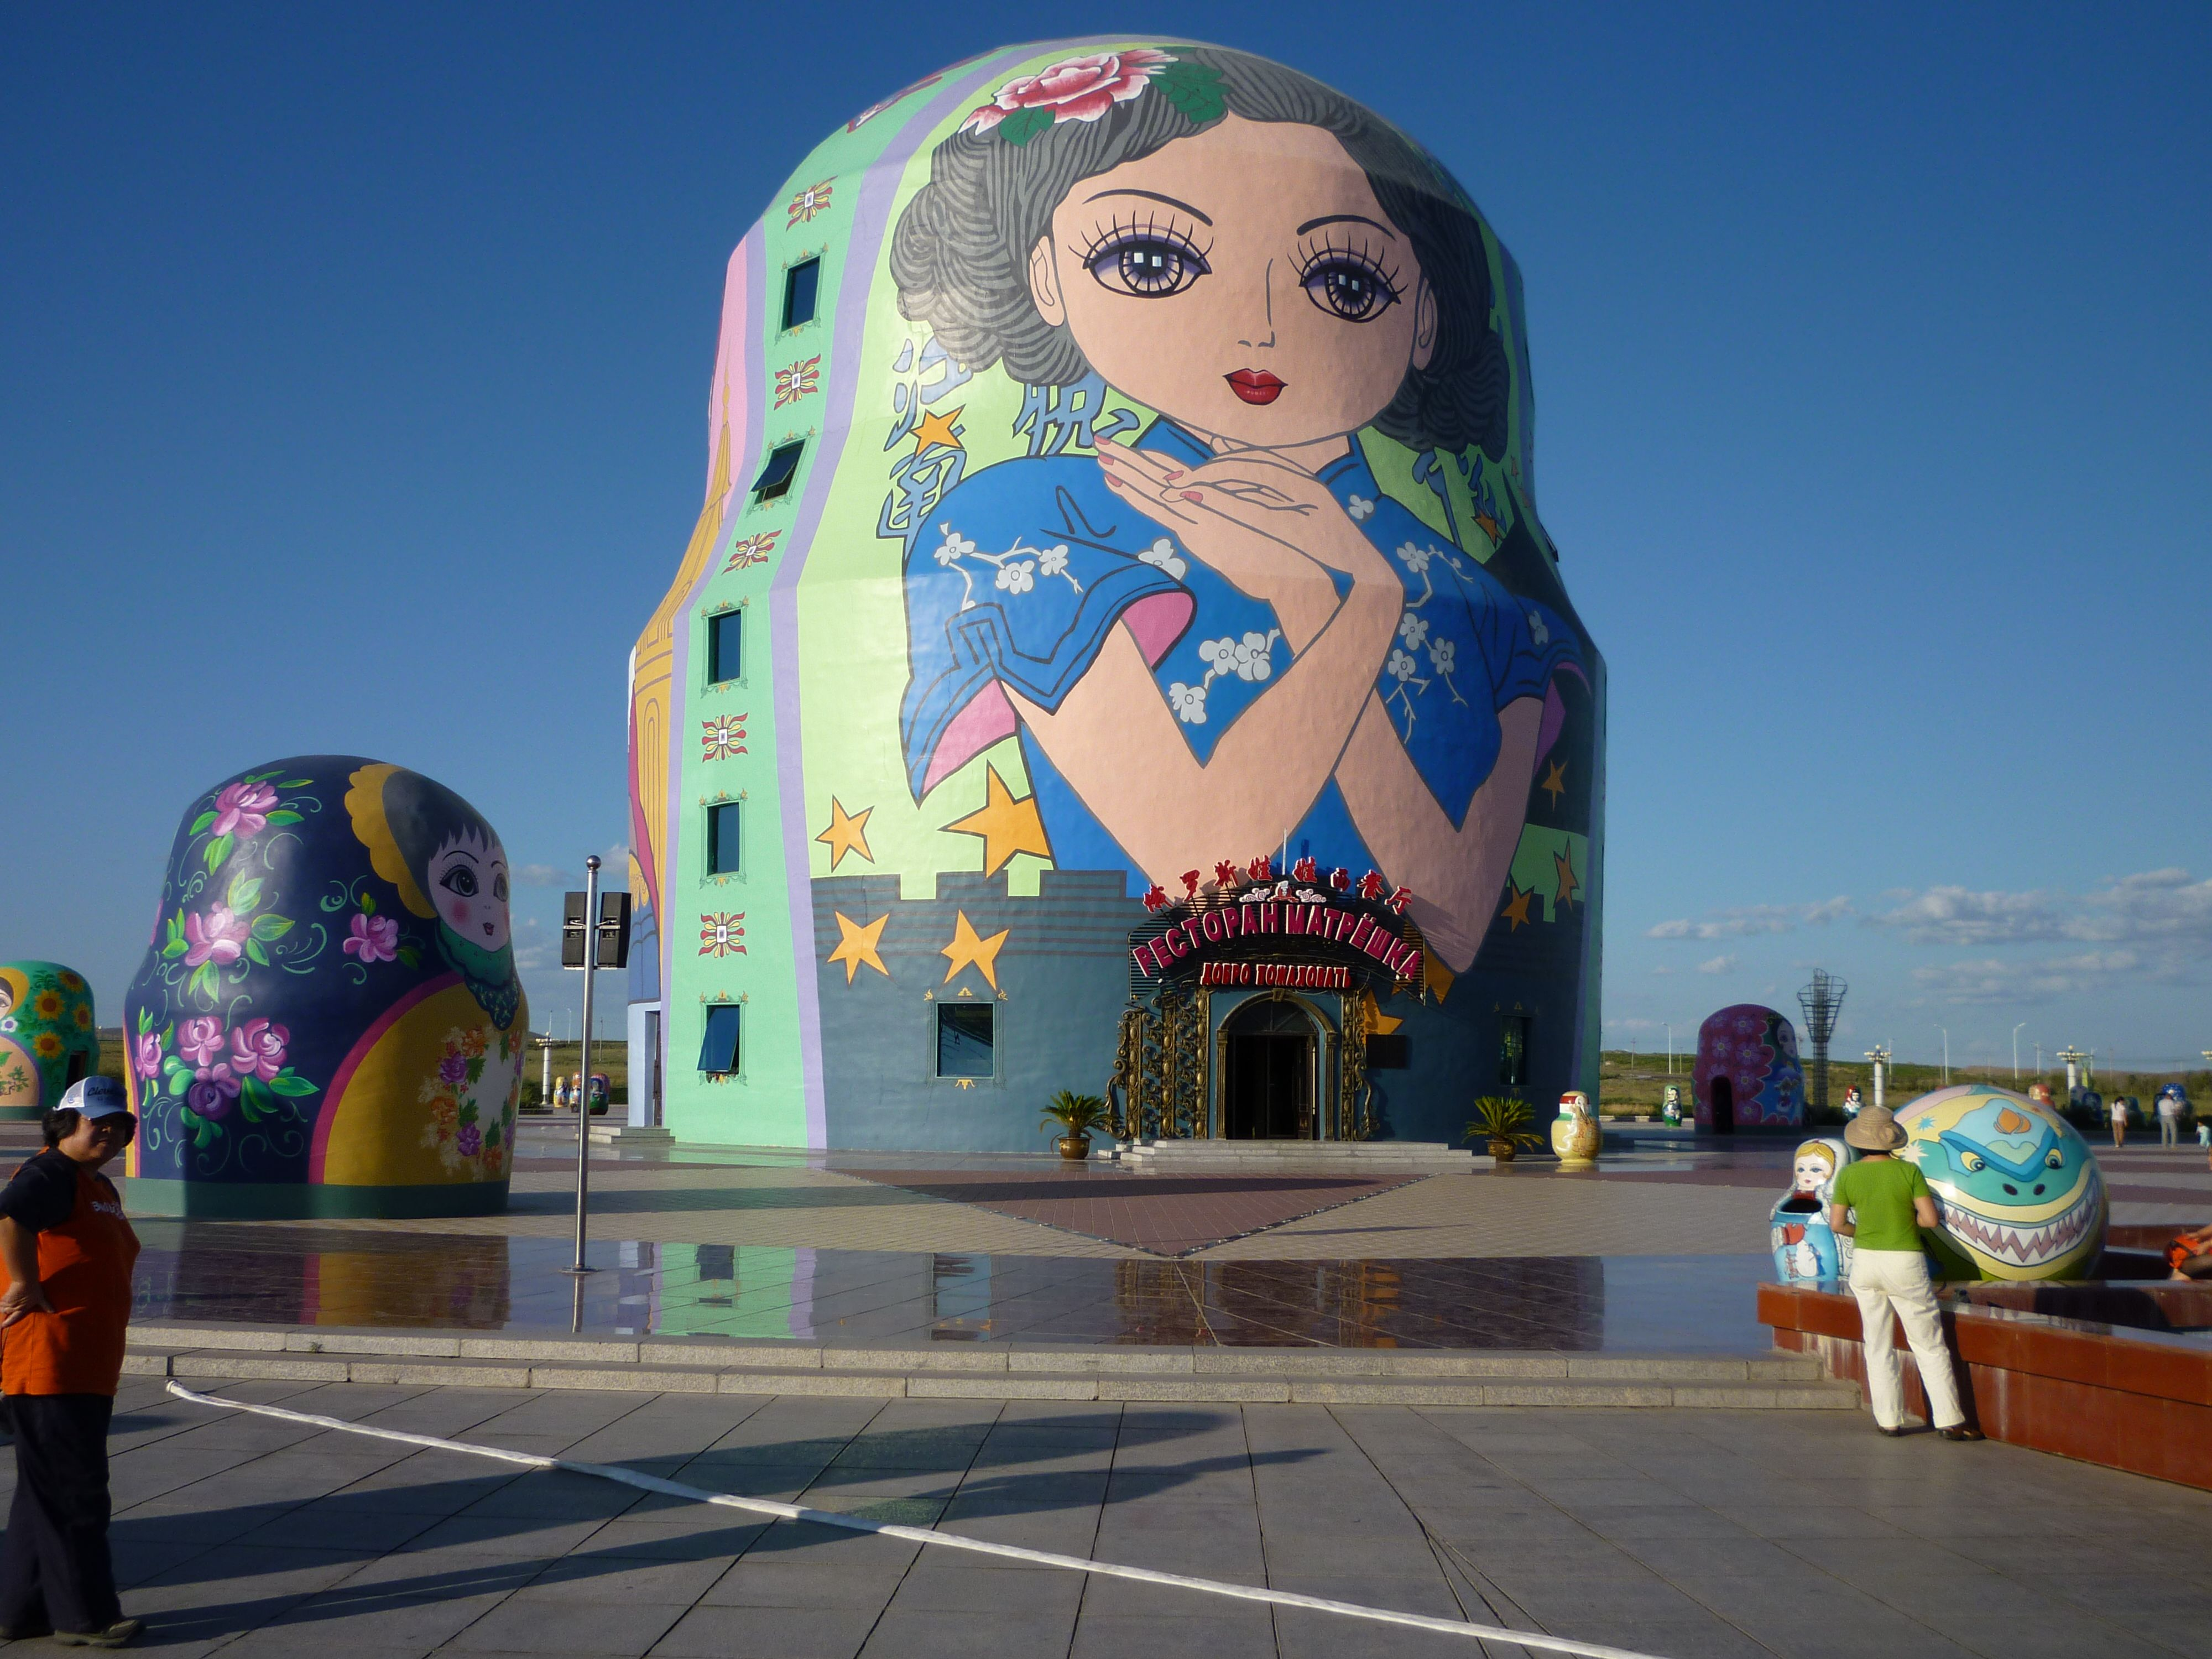 Attraction for Russian tourists just south of the Border